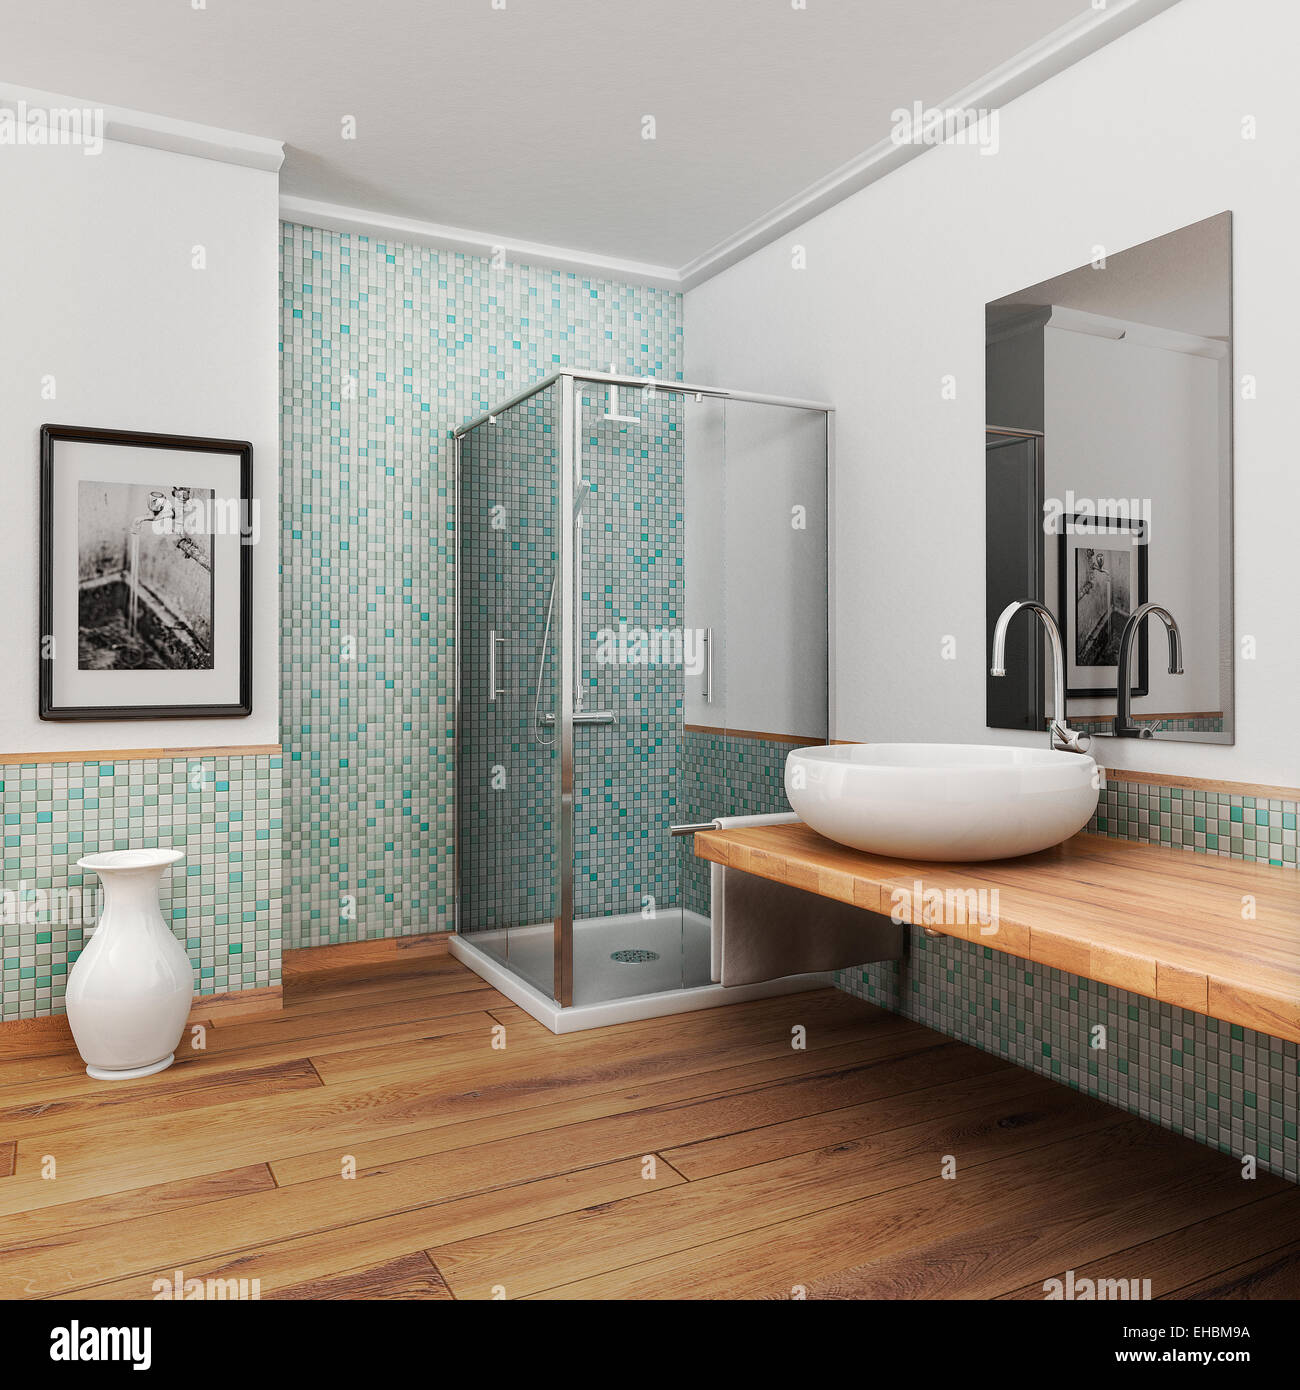 large bathroom with wood floor and vintage mosaic light blue and green - Stock Image